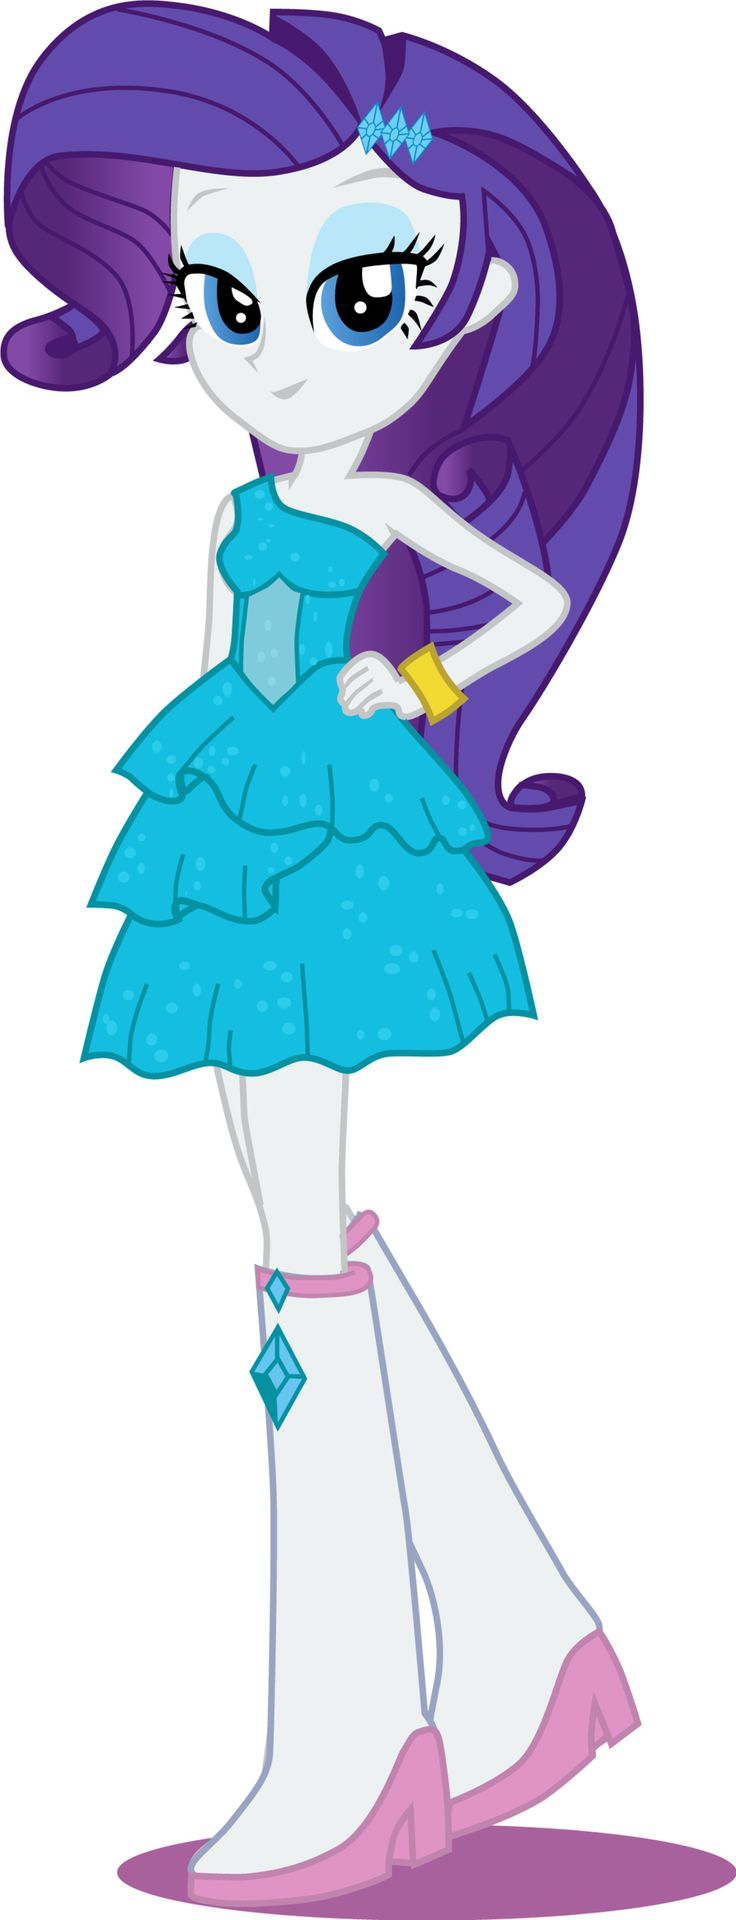 (Equestria girls) Rarity formal dress --- DD wants me to ...